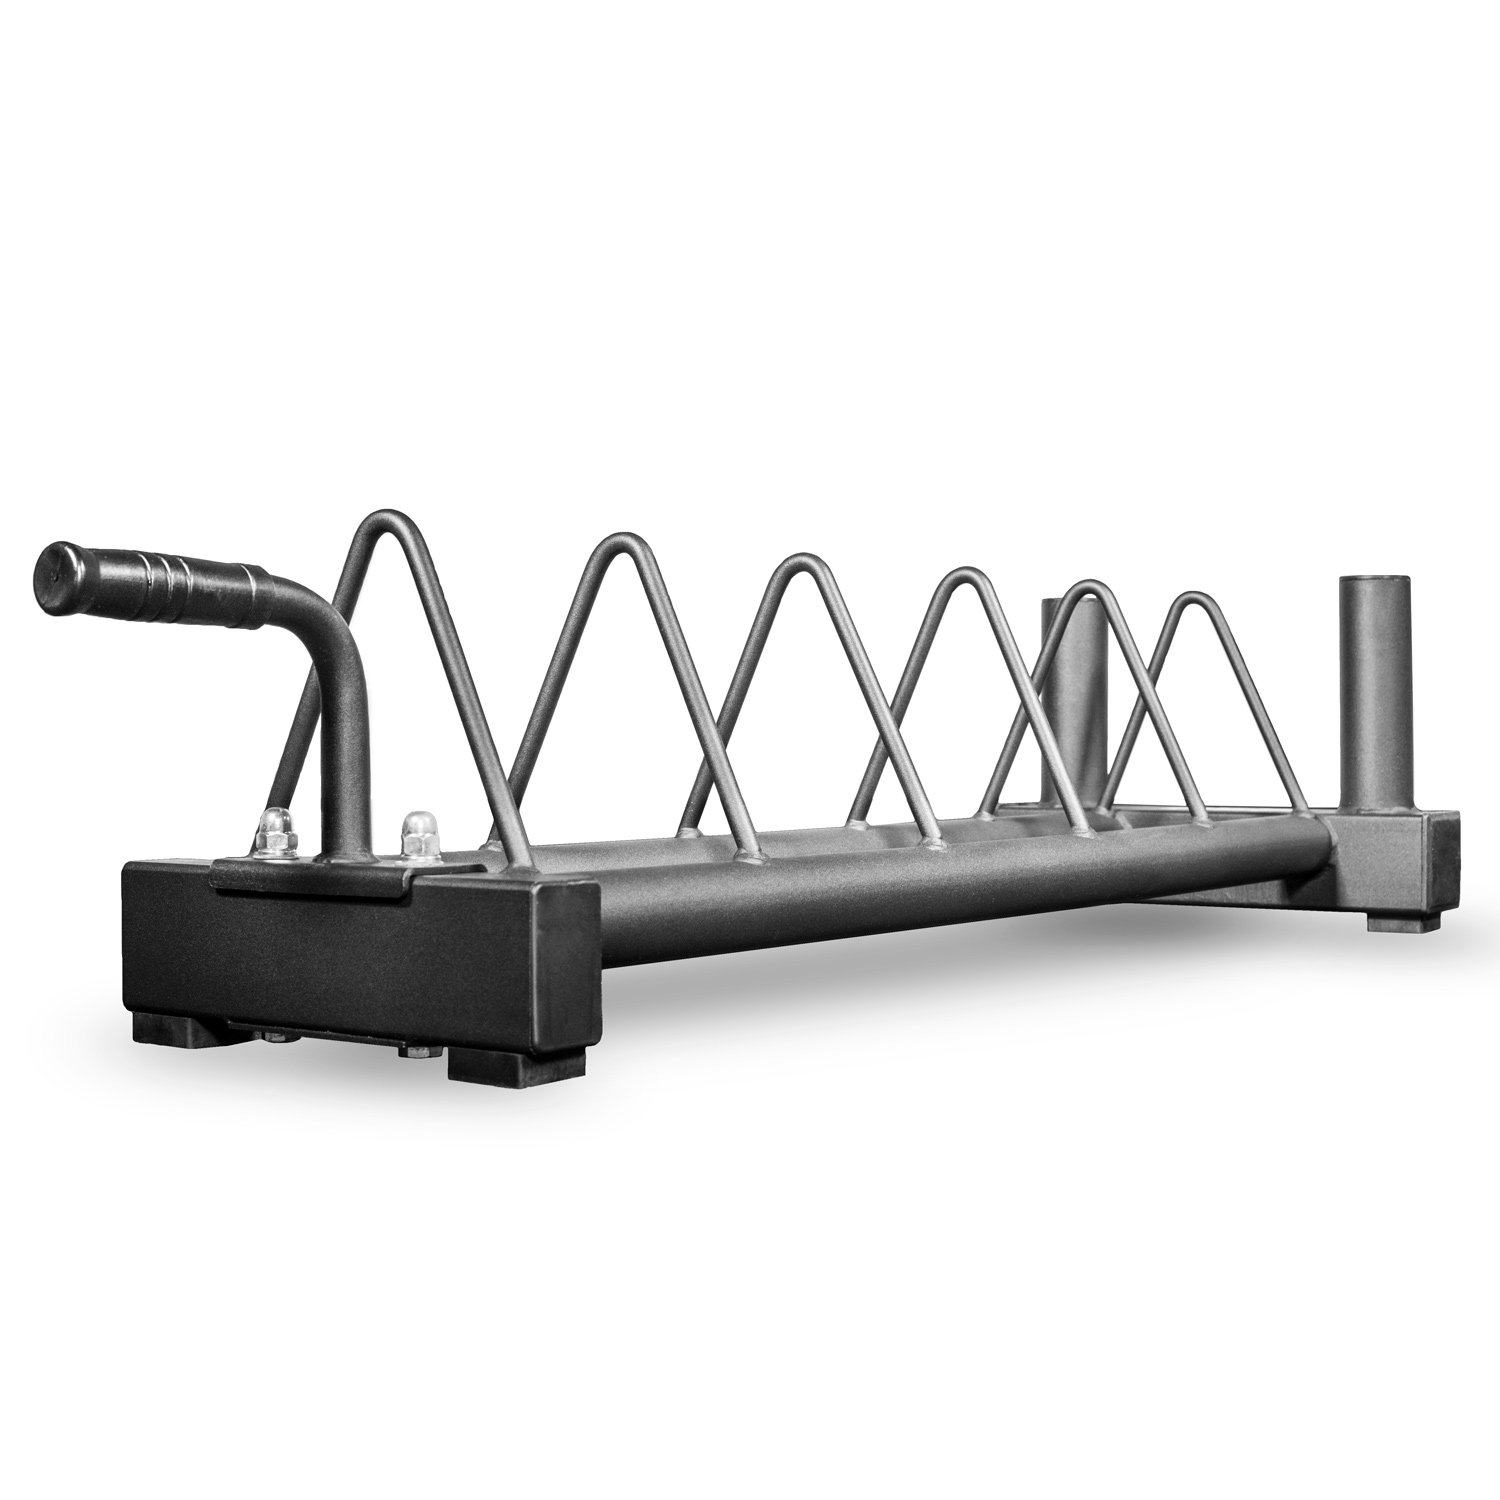 Rep V2 Horizontal Olympic Plate Rack with Wheels and Barbell Storage